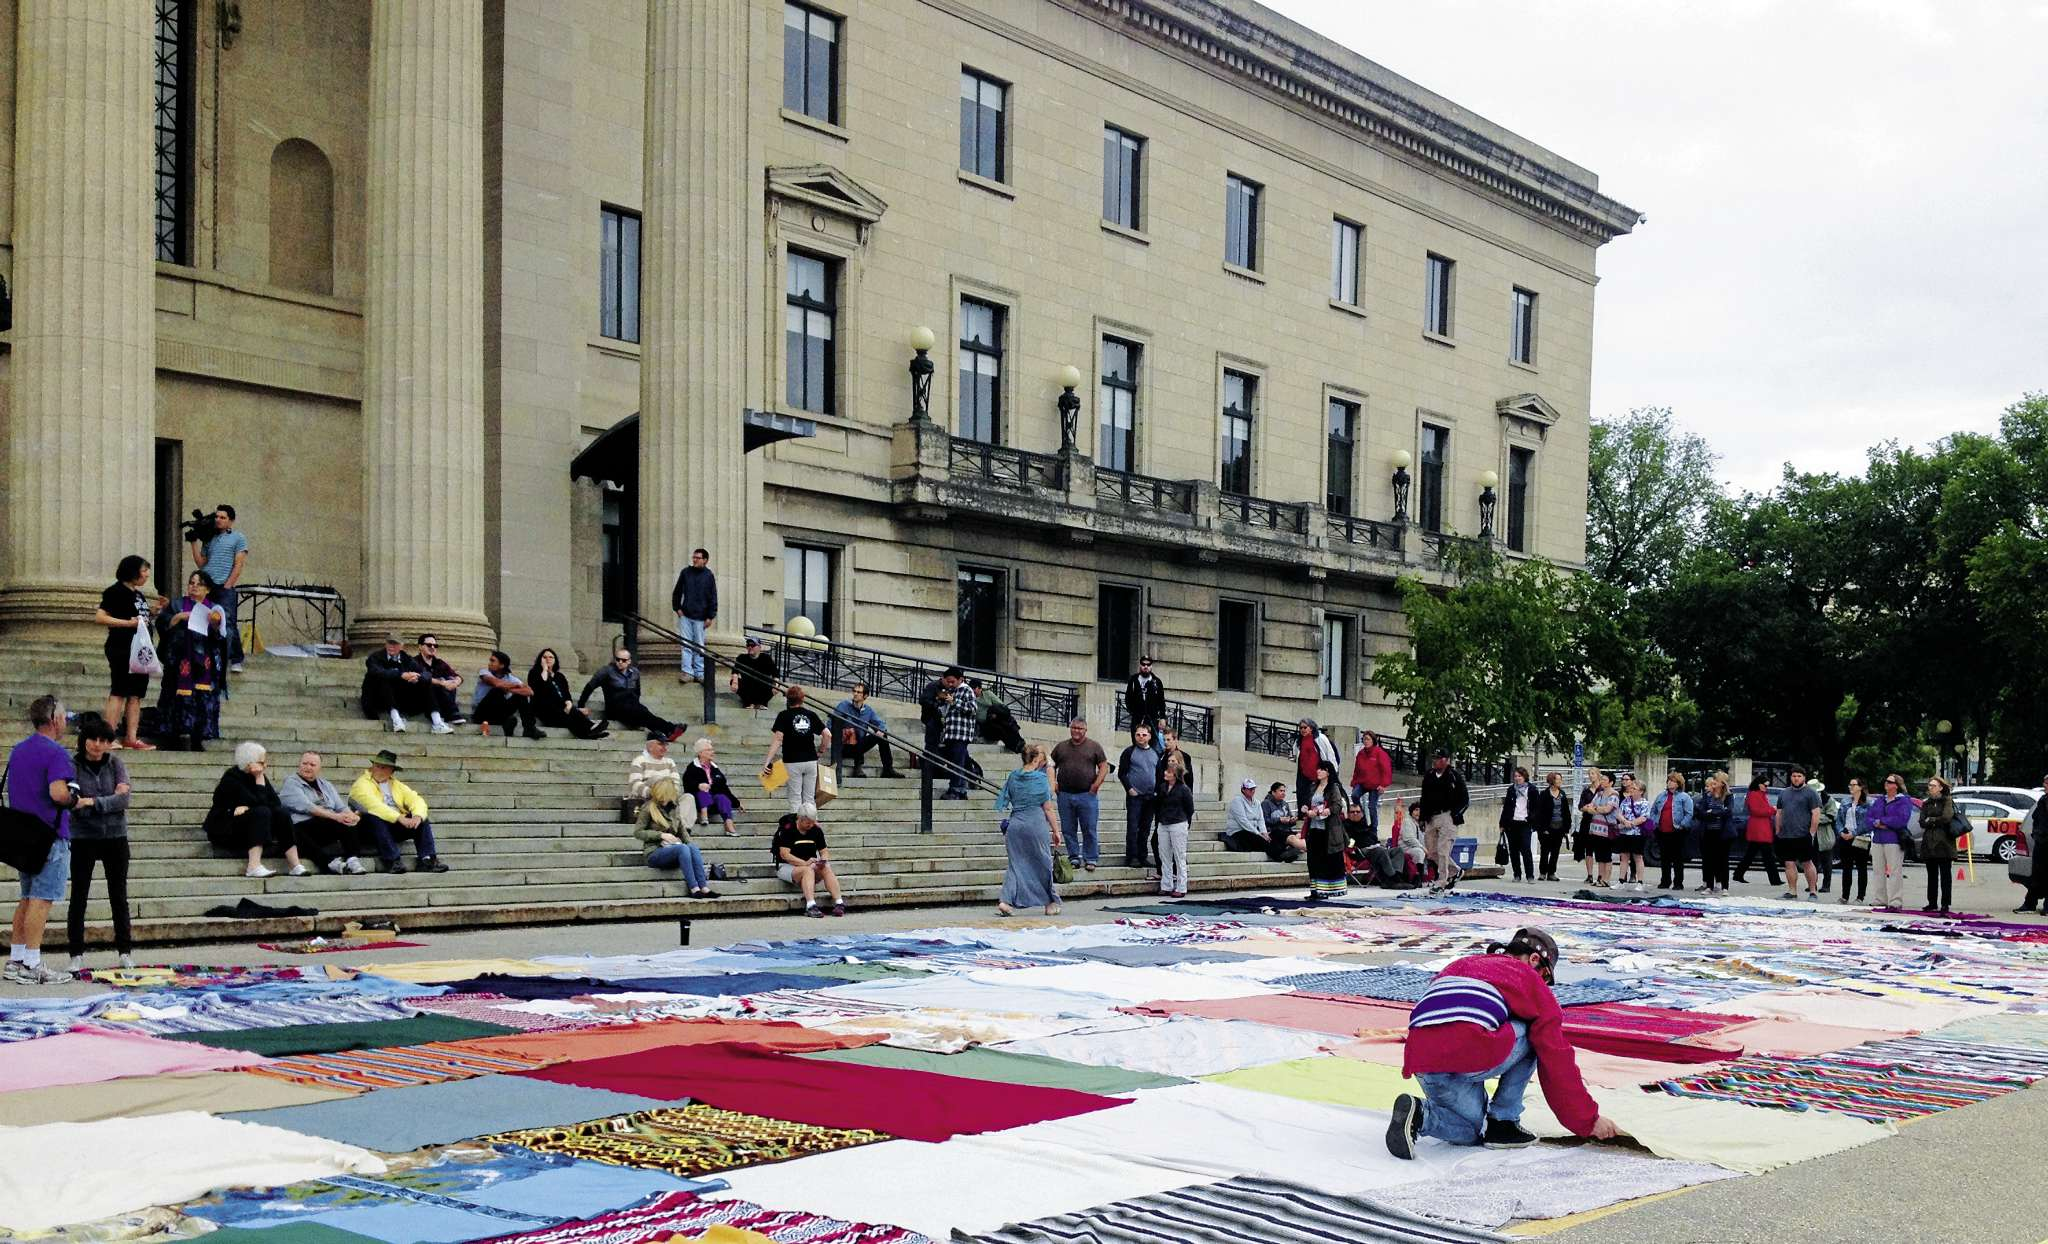 About 200 people took part in the Blanket Exercise at the Manitoba Legislative Building in early June.